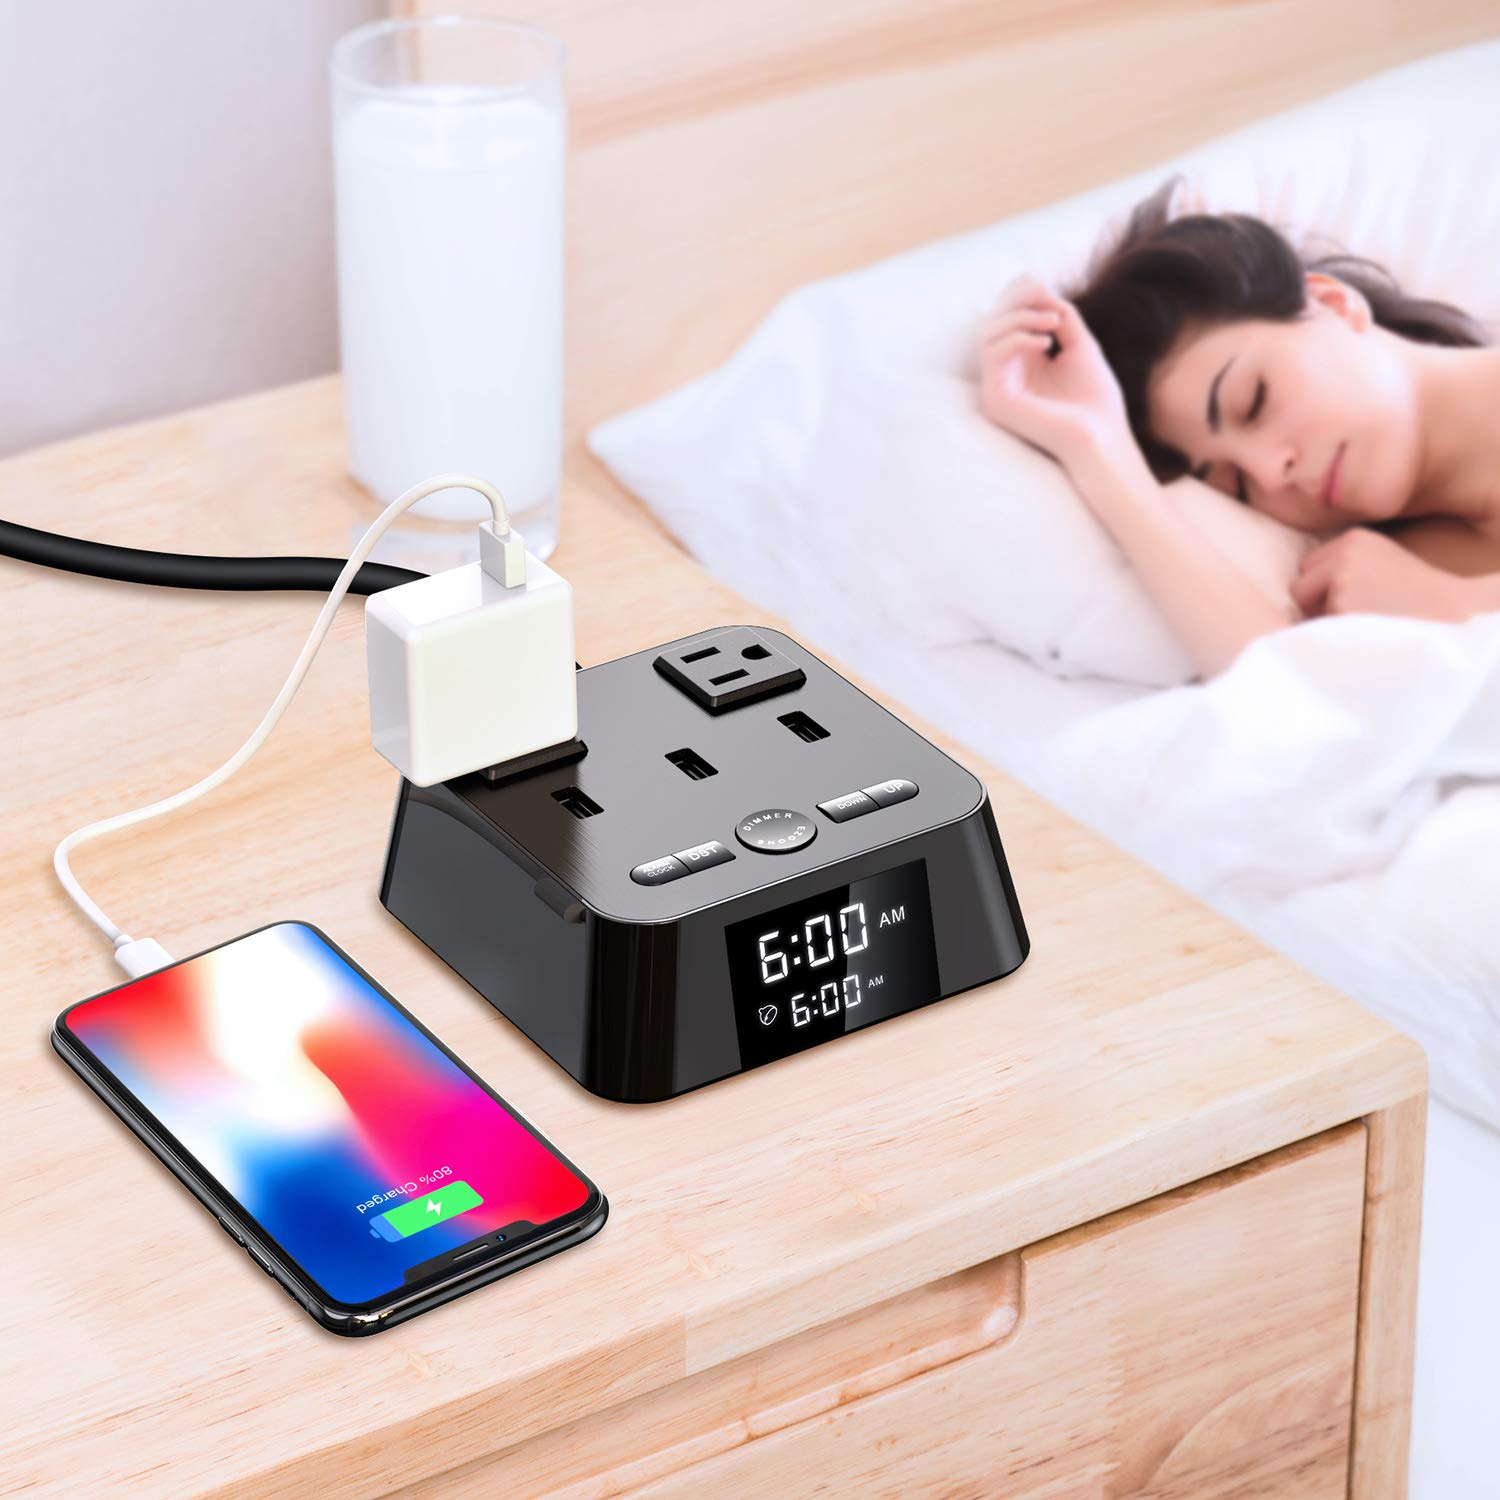 Yostyle Alarm Clock Charger w/3 USB Ports & 2 ACOutlets, 6ft Power Cord Charging Station Power Strip for Hotel Home Office,UL Tested (4 Dimmer Brightness,Snooze,ON/Off Switch,DST Time,Battery Backup)